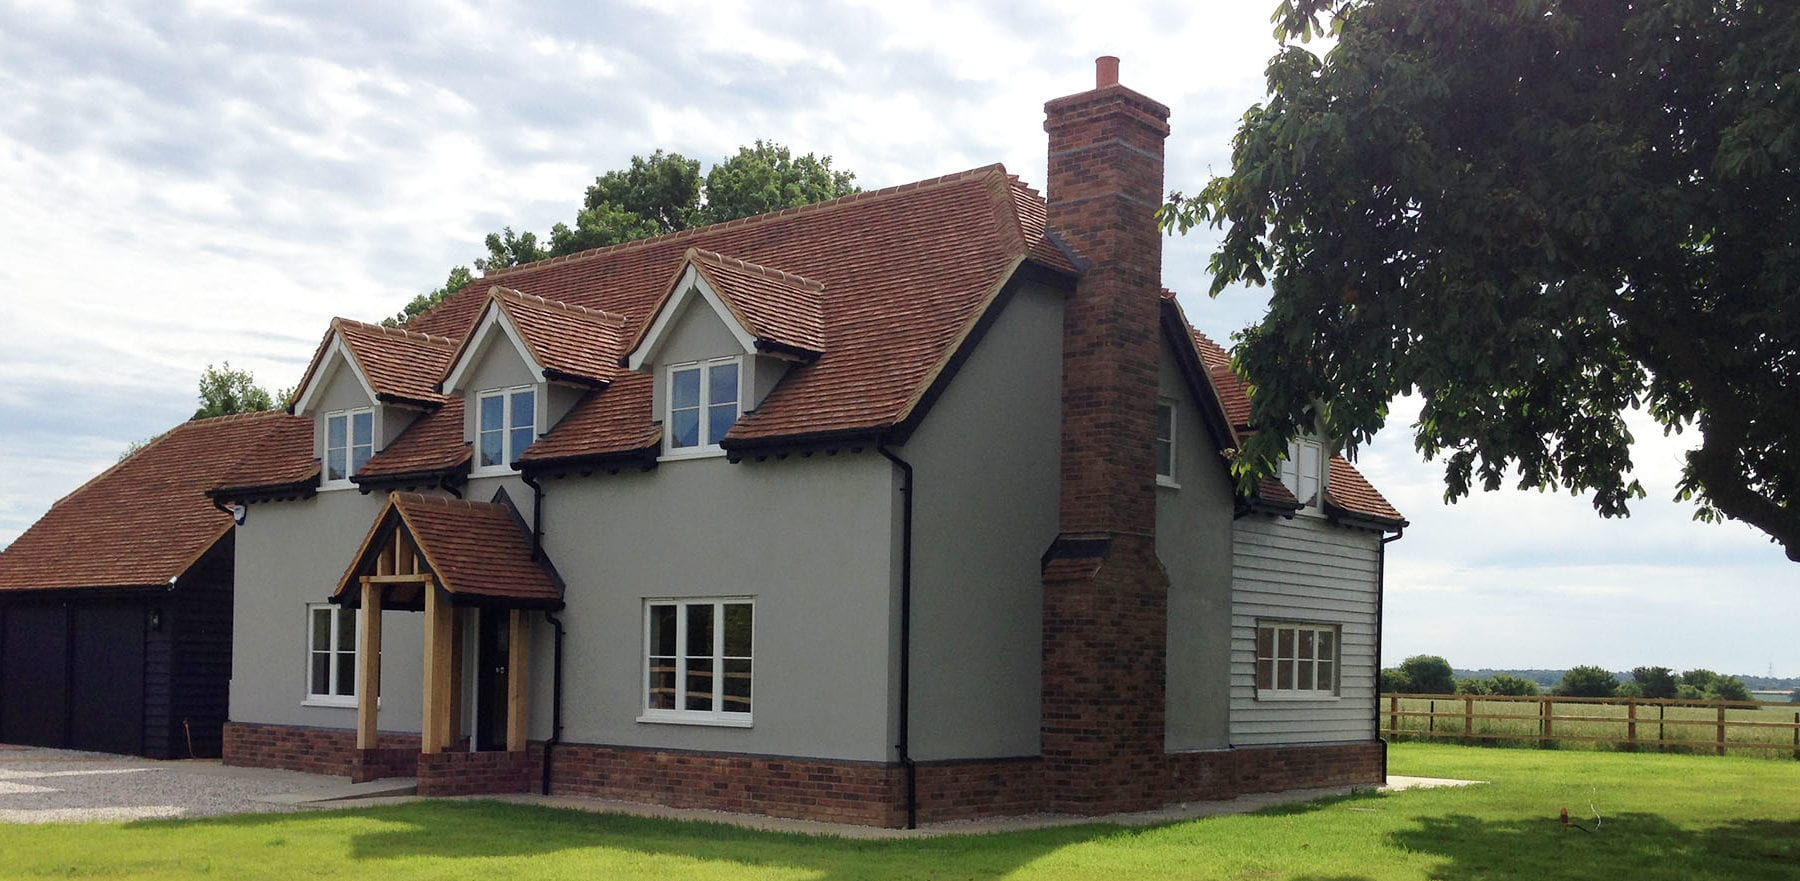 Lifestiles - Handcrafted Foxearth Clay Roof Tiles - Yeldham, England 6